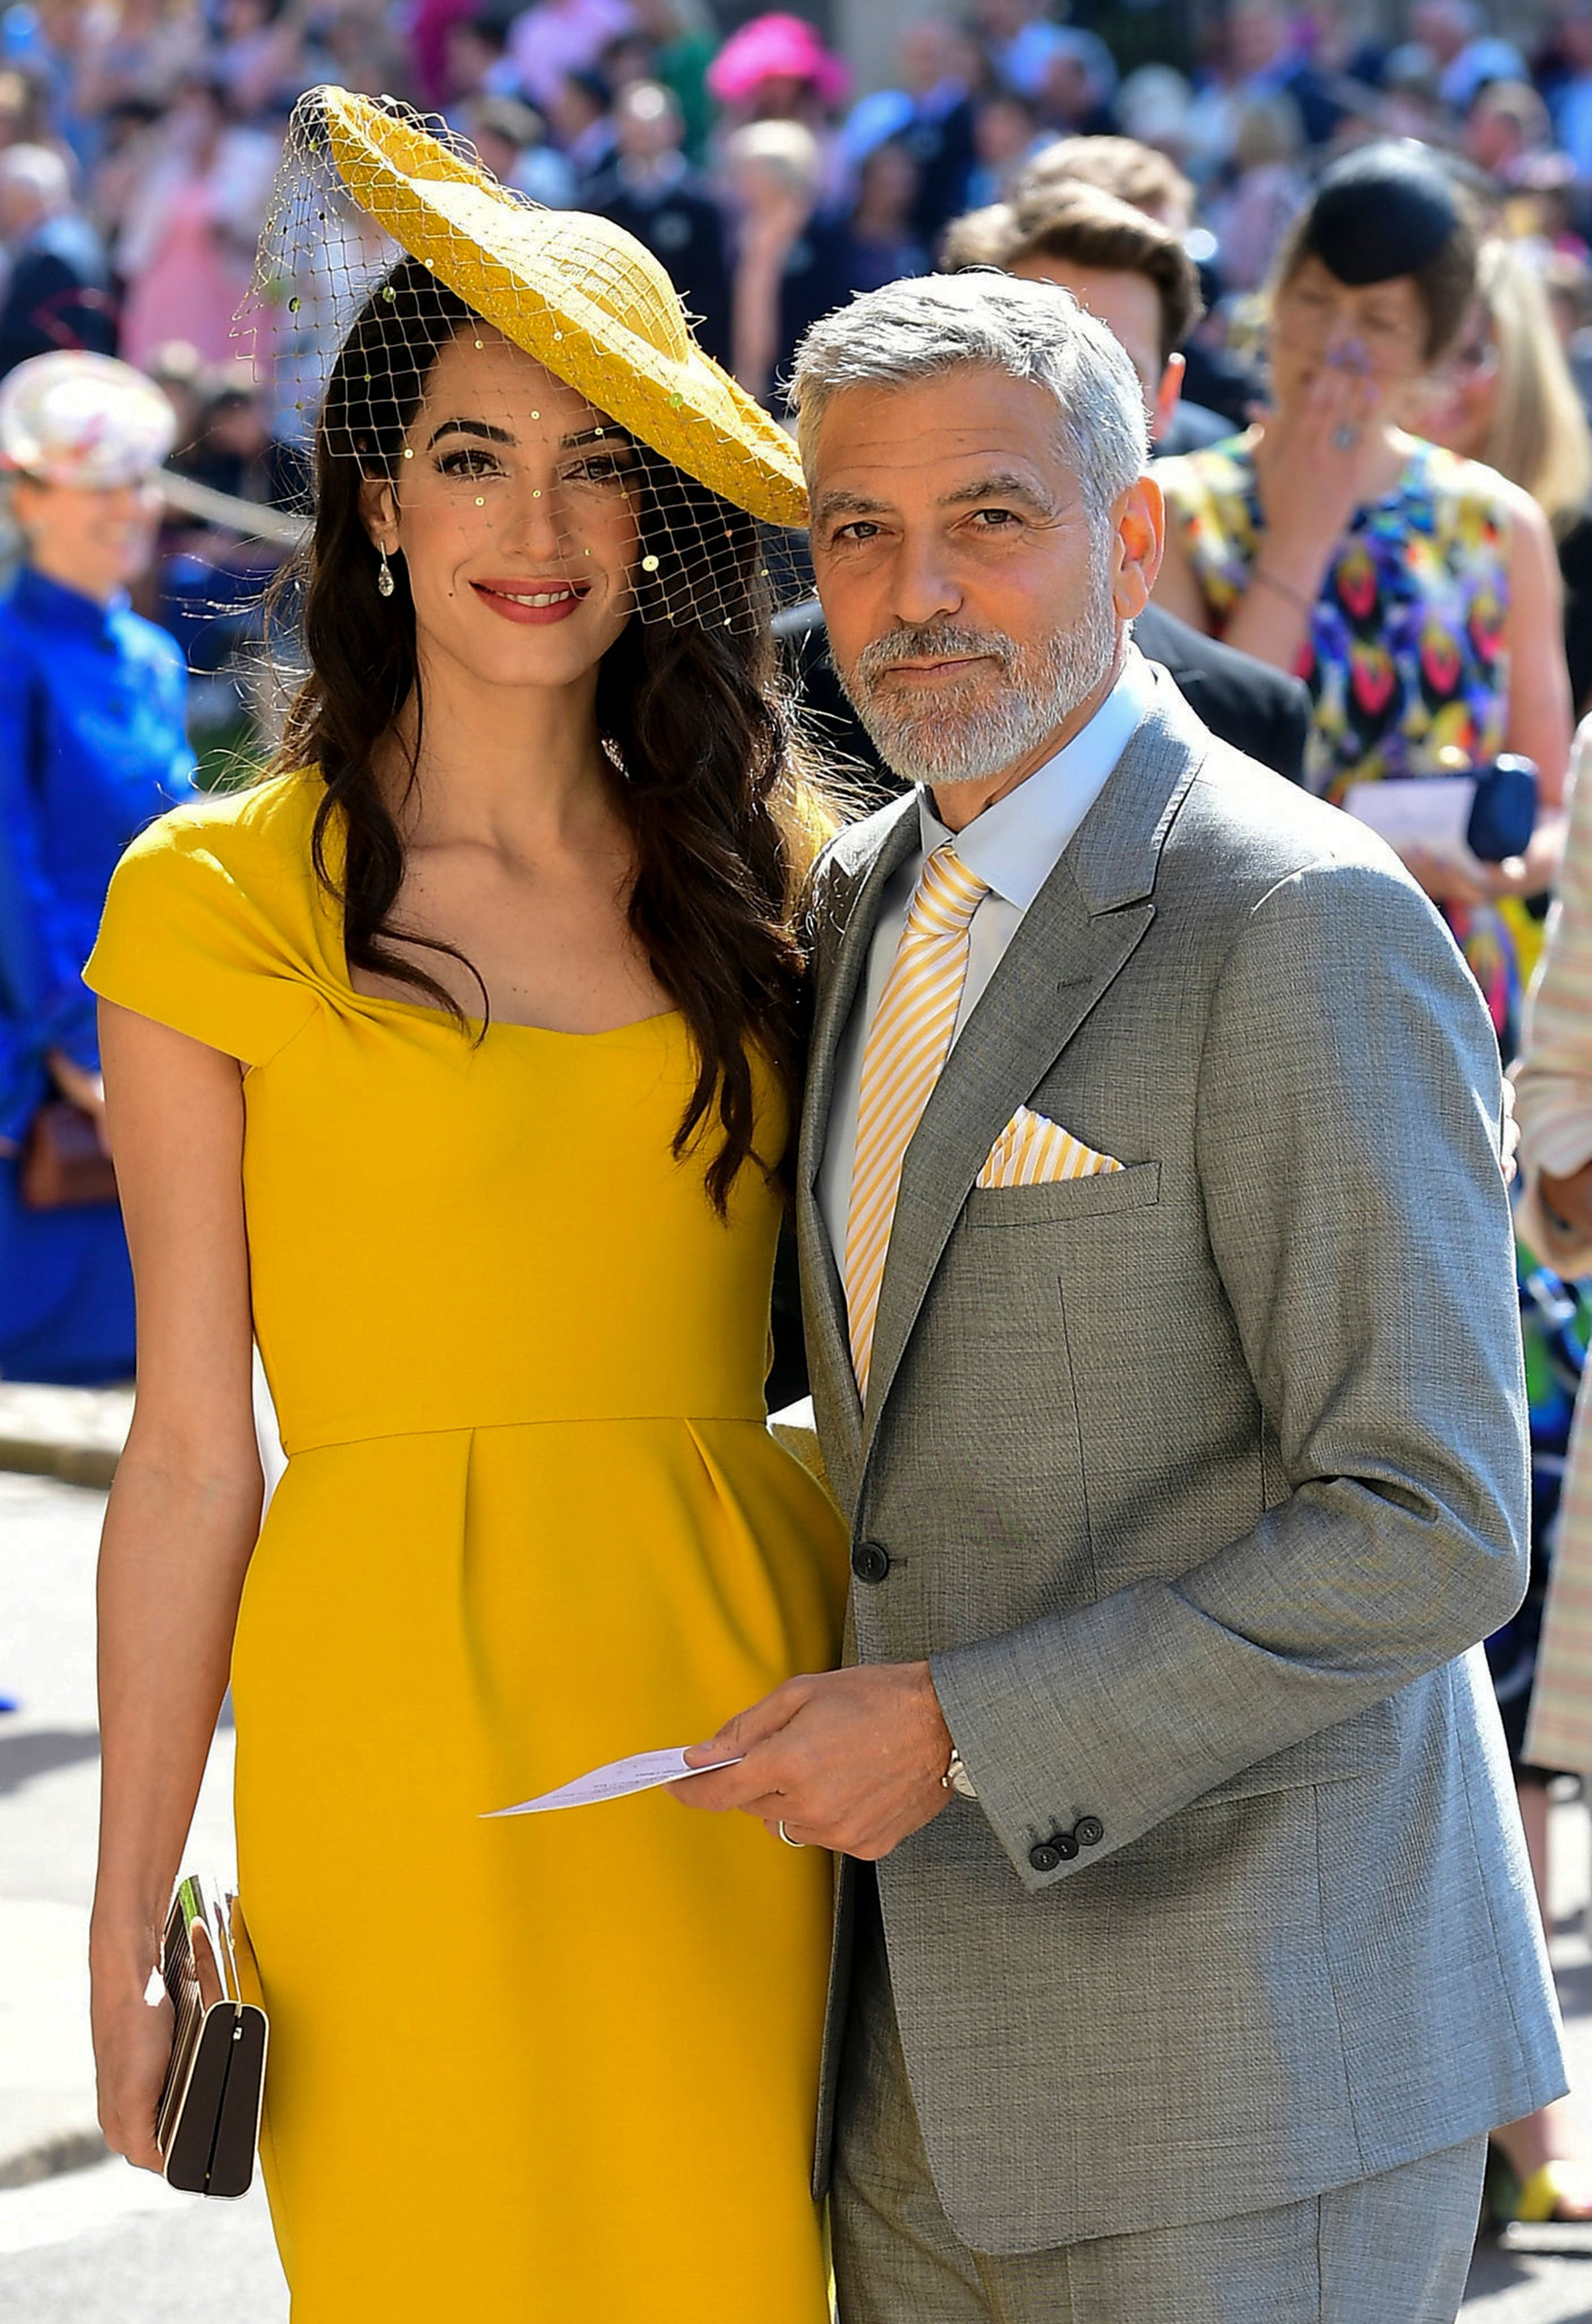 George Clooney and Amal Clooney arrive for the wedding ceremony of Britain's Prince Harry, Duke of Sussex and US actress Meghan Markle at St George's Chapel, Windsor Castle, in Windsor, on May 19, 2018. | Source: Getty Images